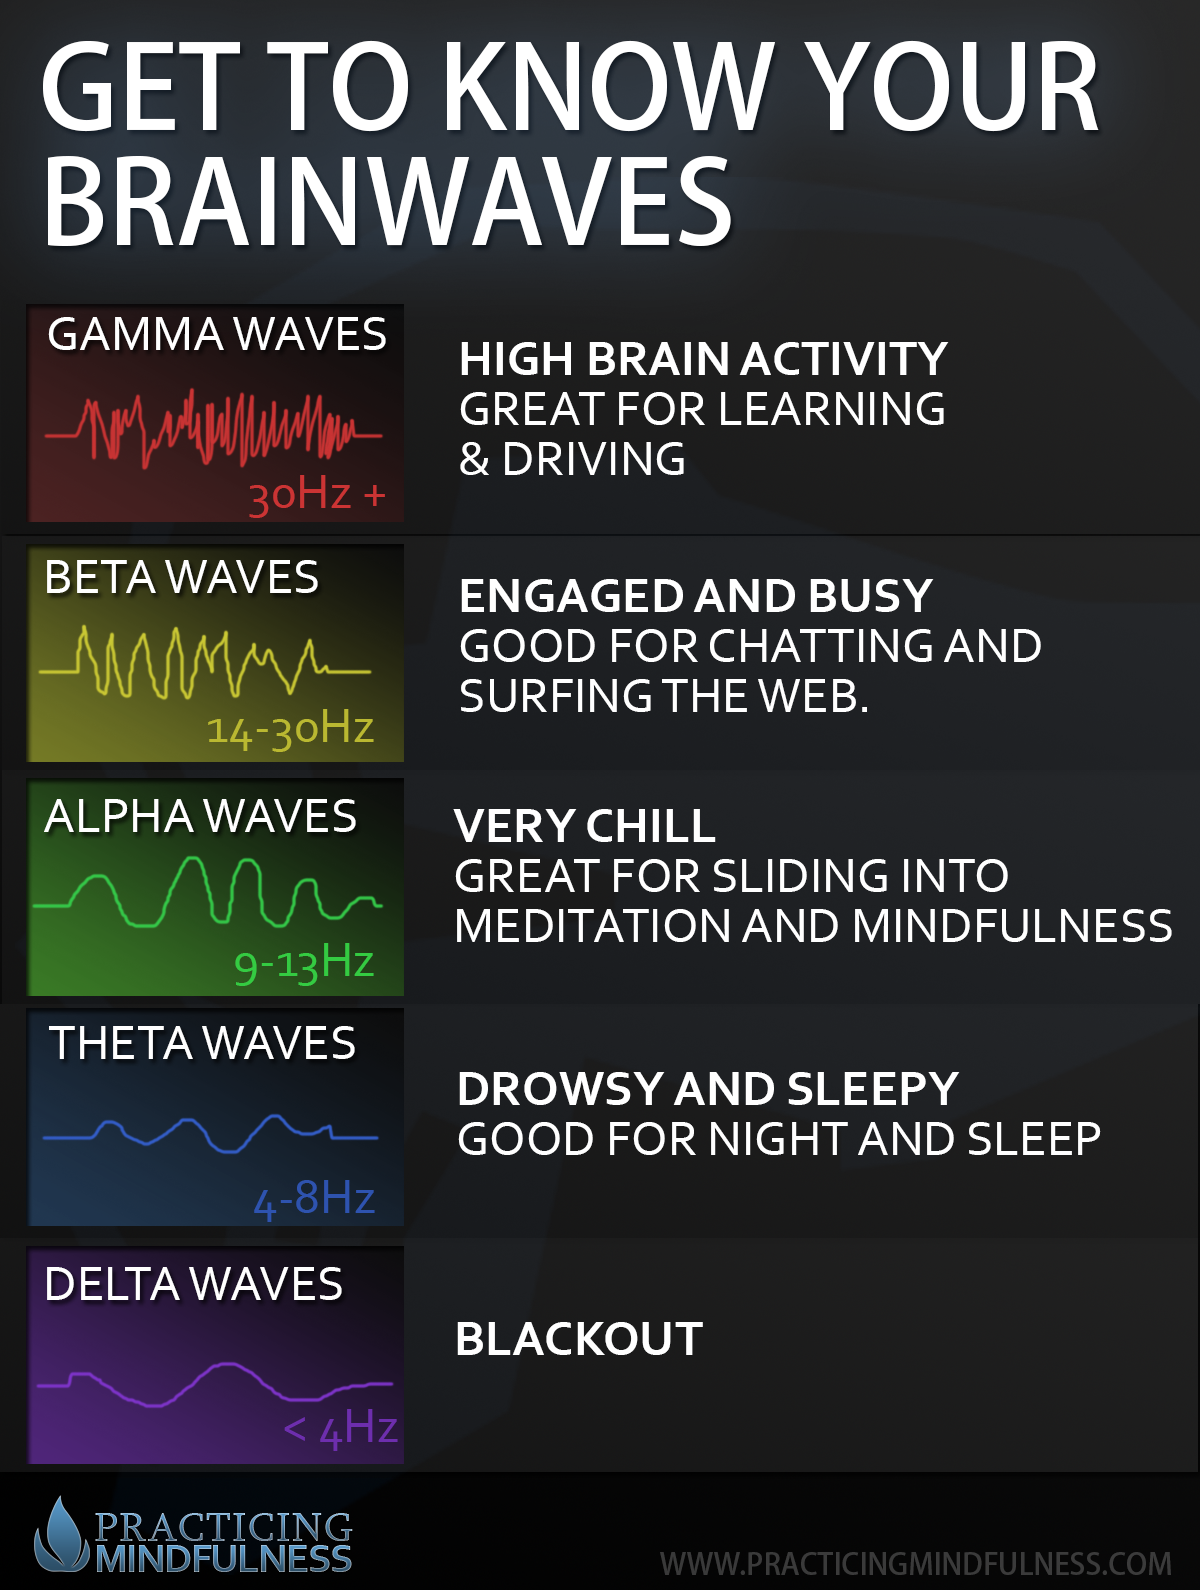 I Prefer The Alpha Amp Gamma Waves Myself How About You